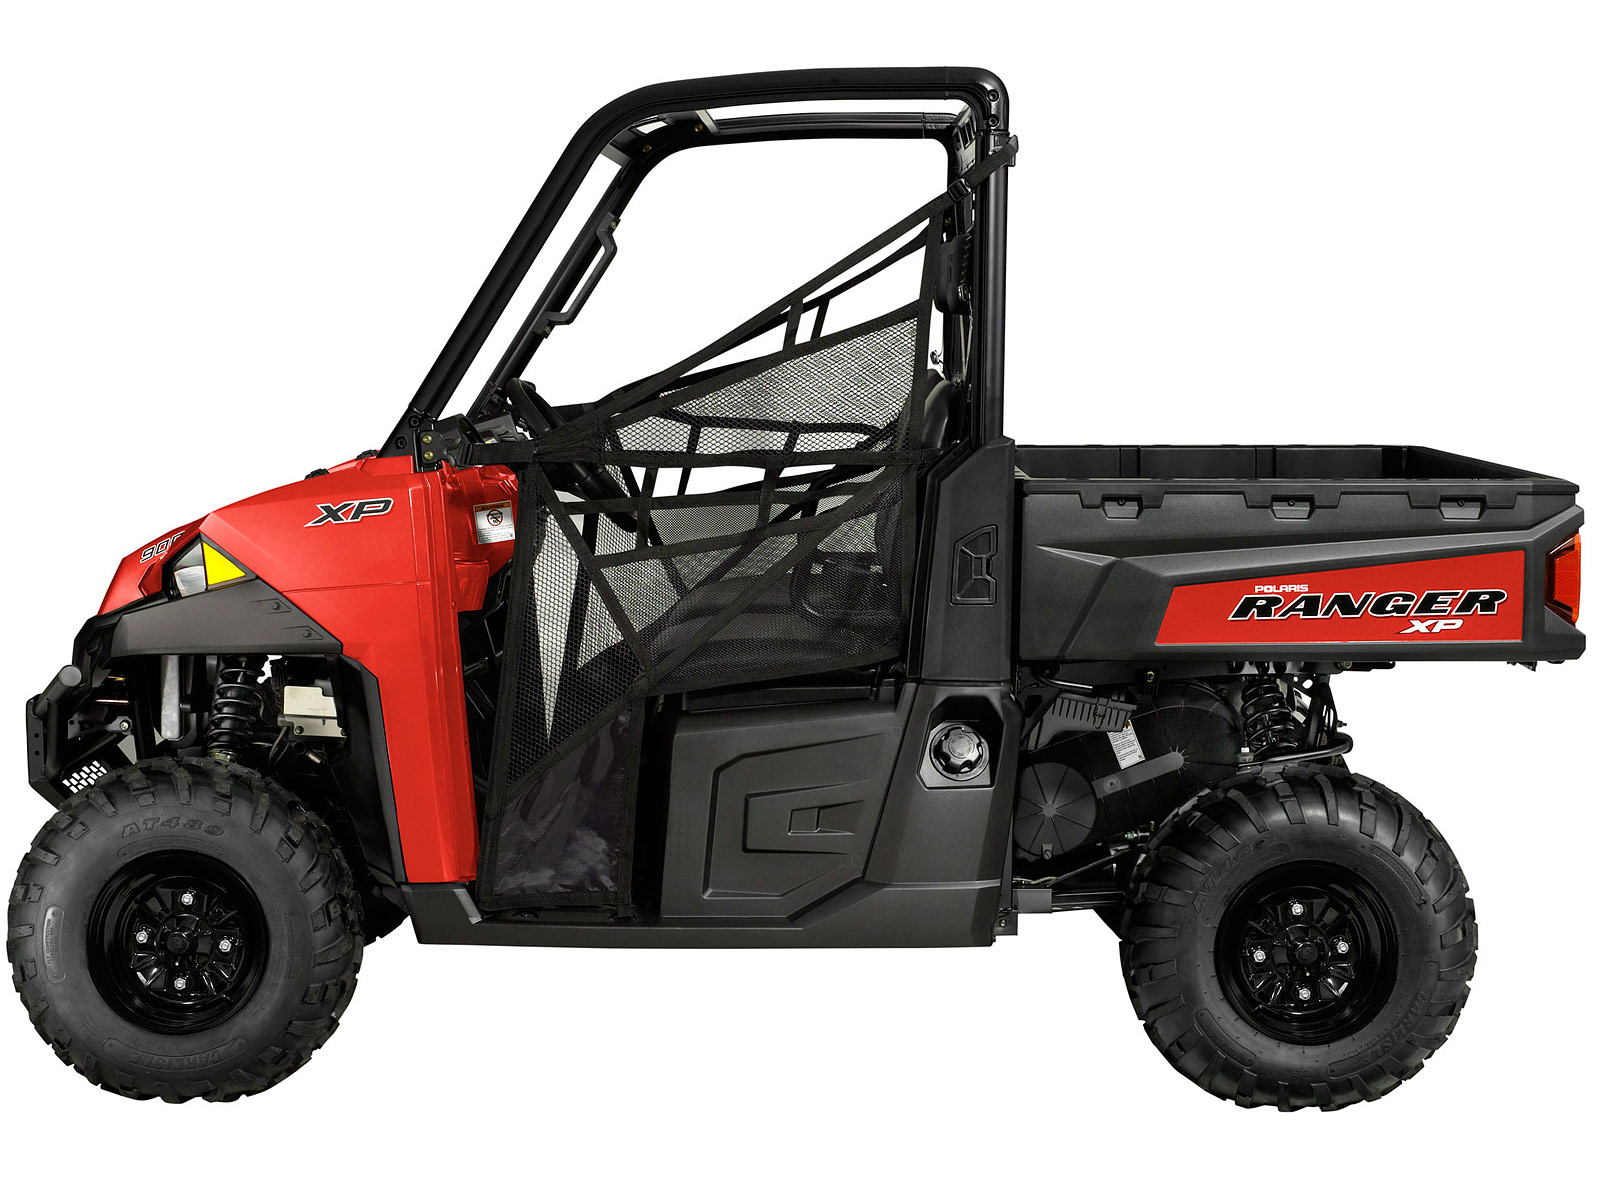 medium resolution of  2013 polaris ranger xp900 atv pictures 2